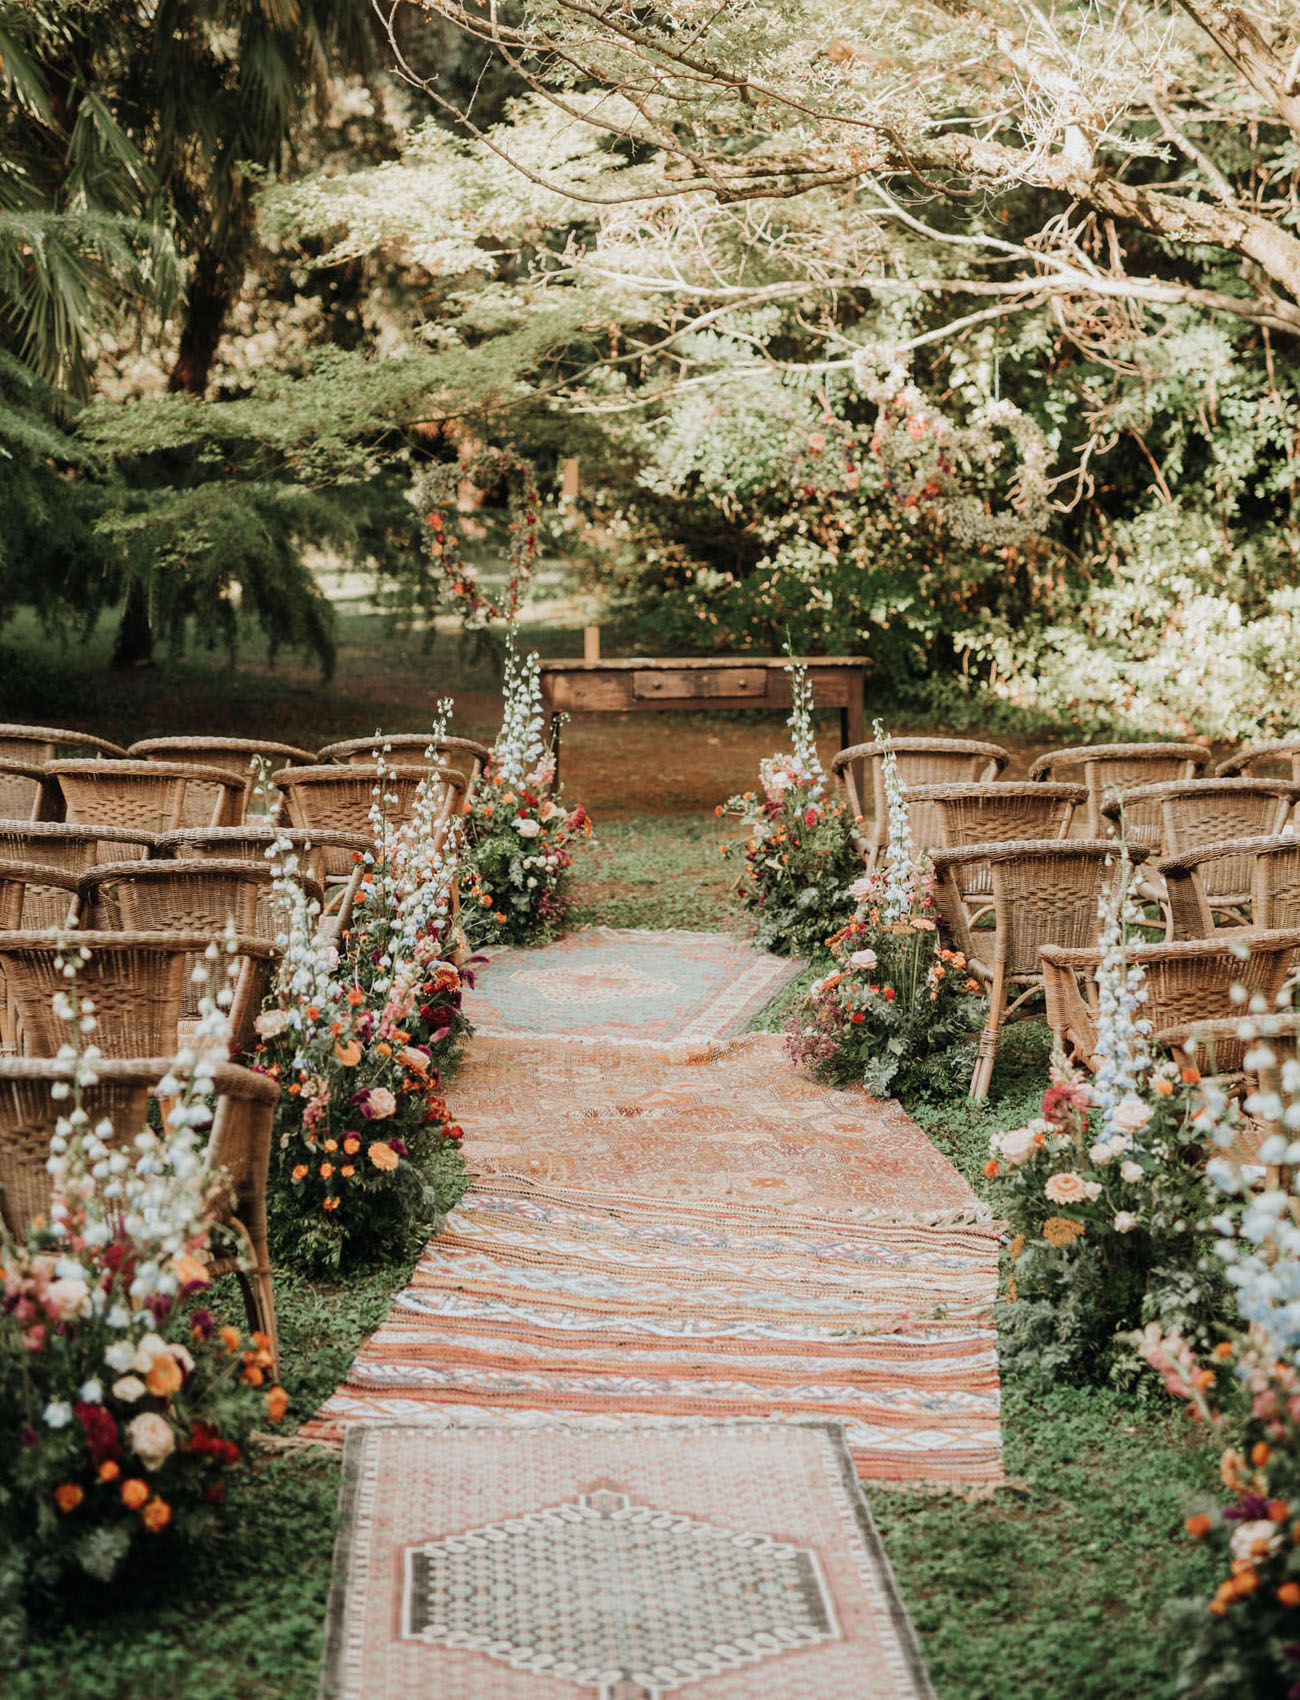 The wedding ceremony space was done super bright, with bold blooms, greenery and boho rugs